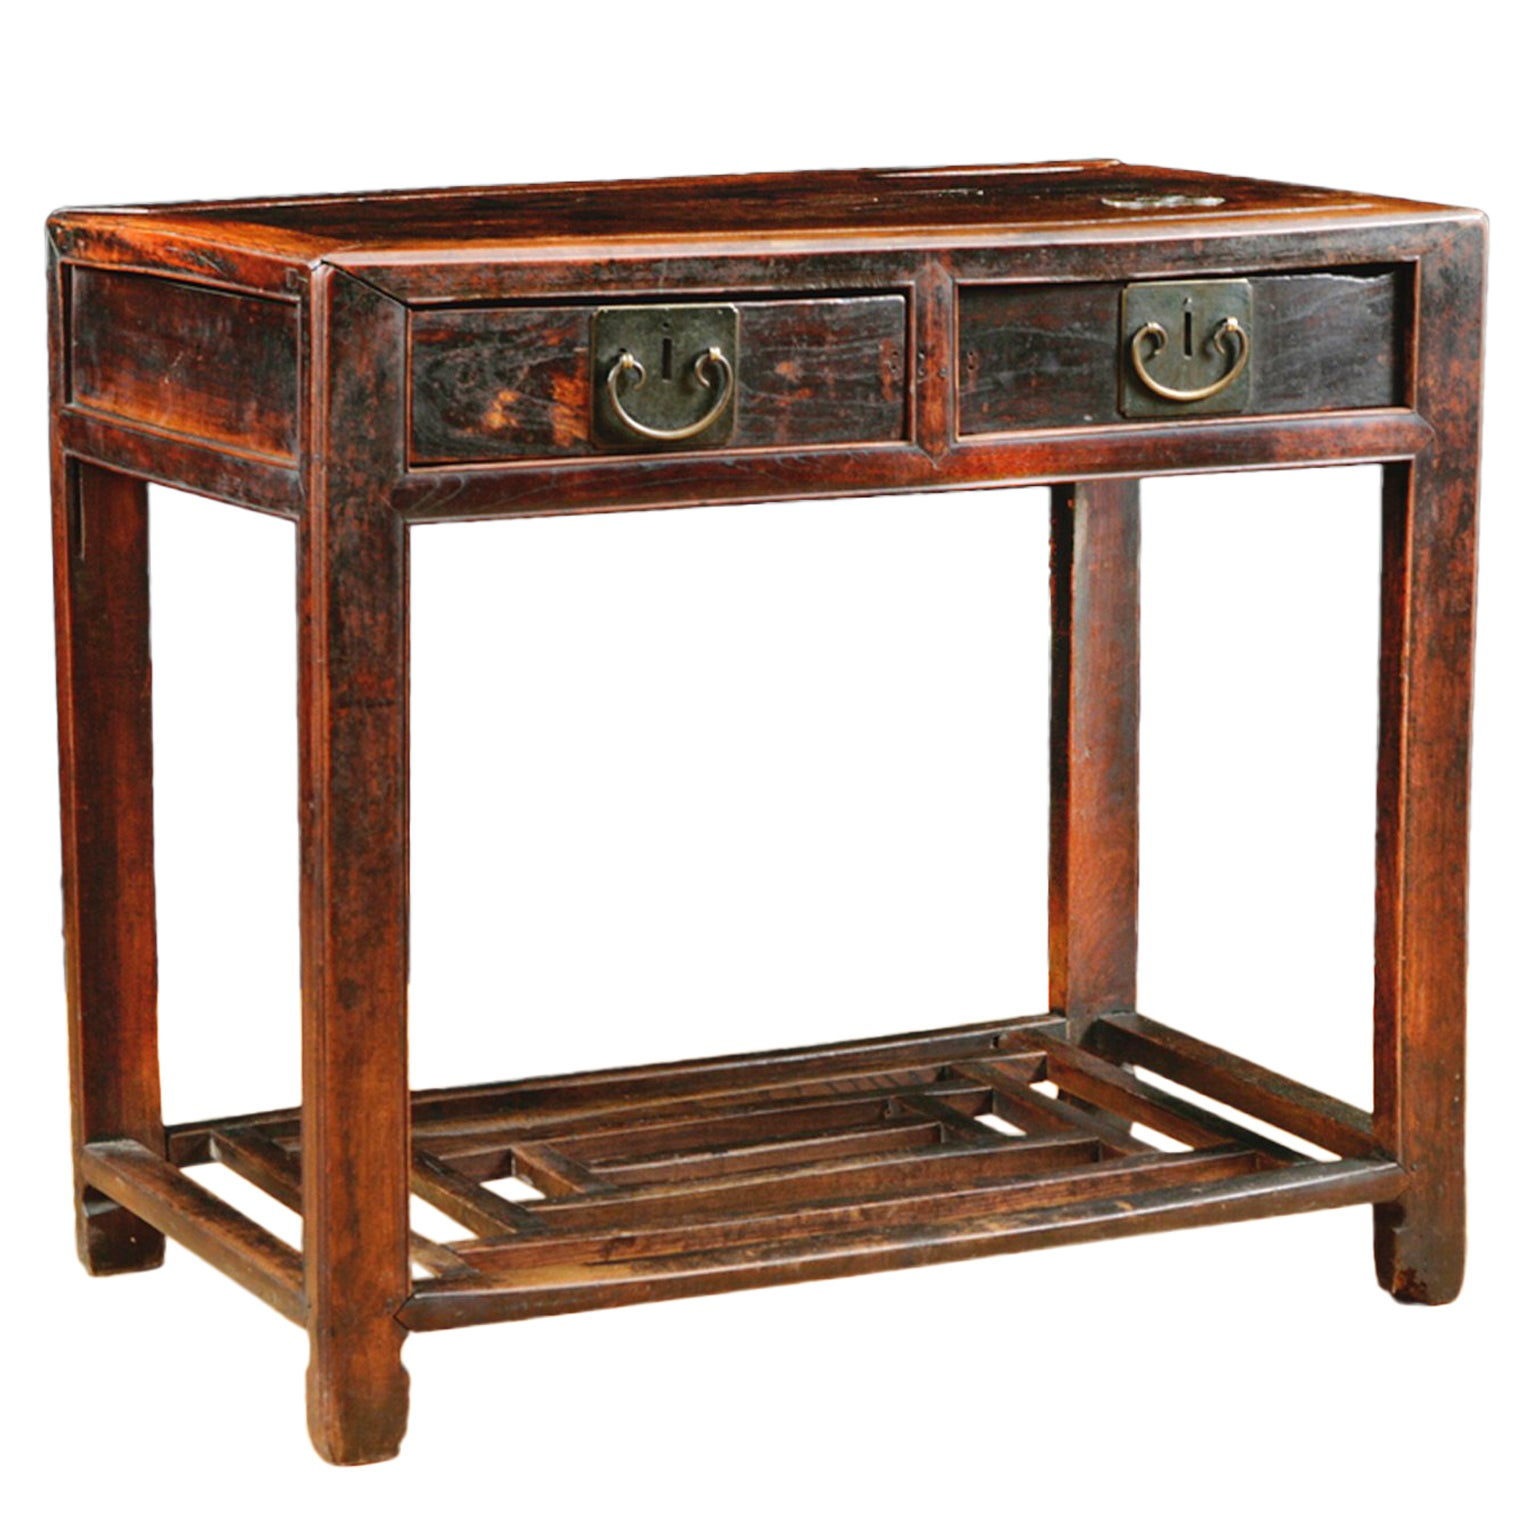 Chinese Table in Elm with Original Cinnabar Lacquer, circa 1790 Qing Dynasty